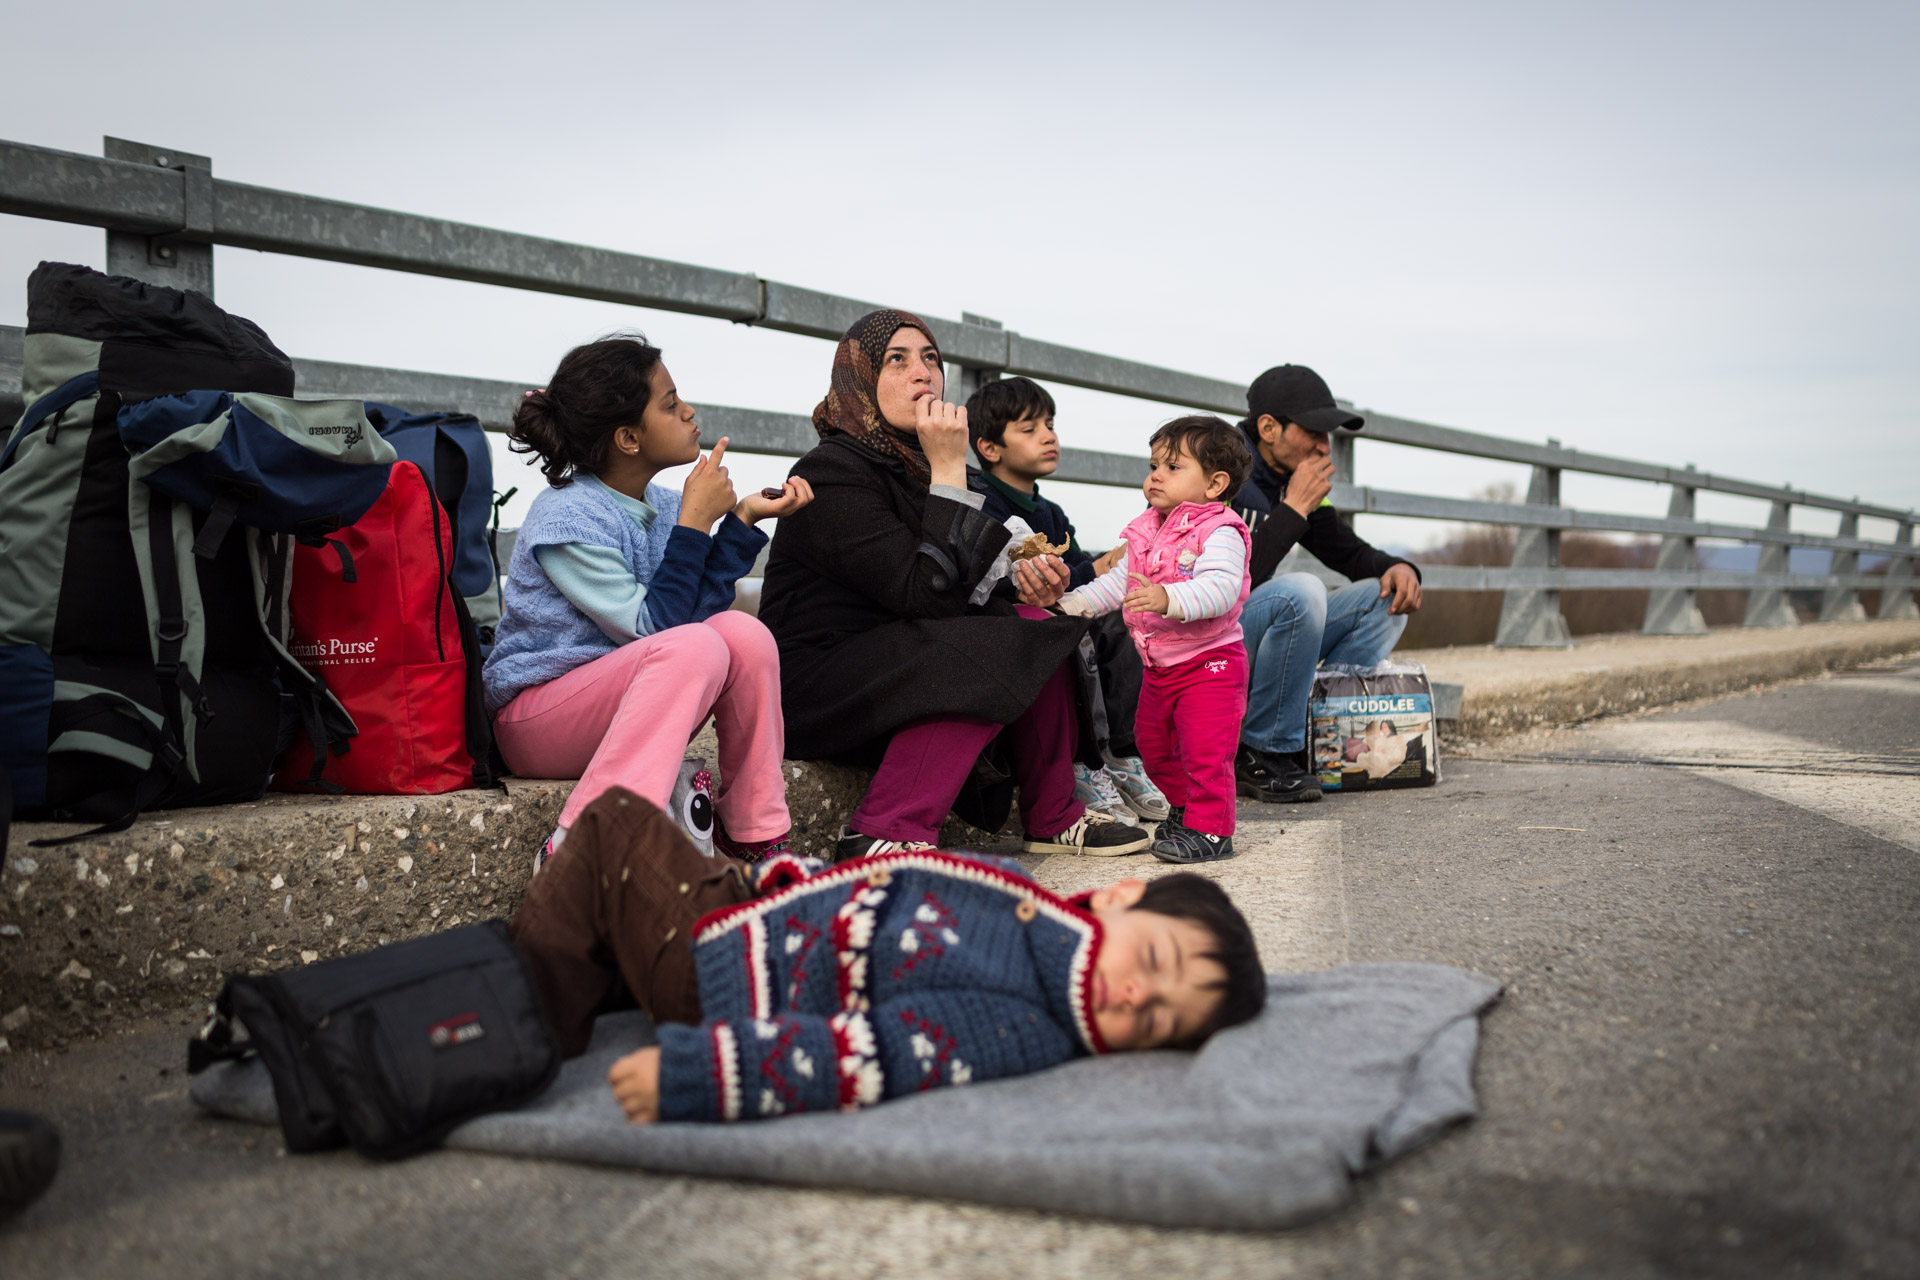 Close to Idomeni, the family takes another rest. At this point, the smallest kid of the family, Hamudi, falls asleep the minute he can lay down somewhere.